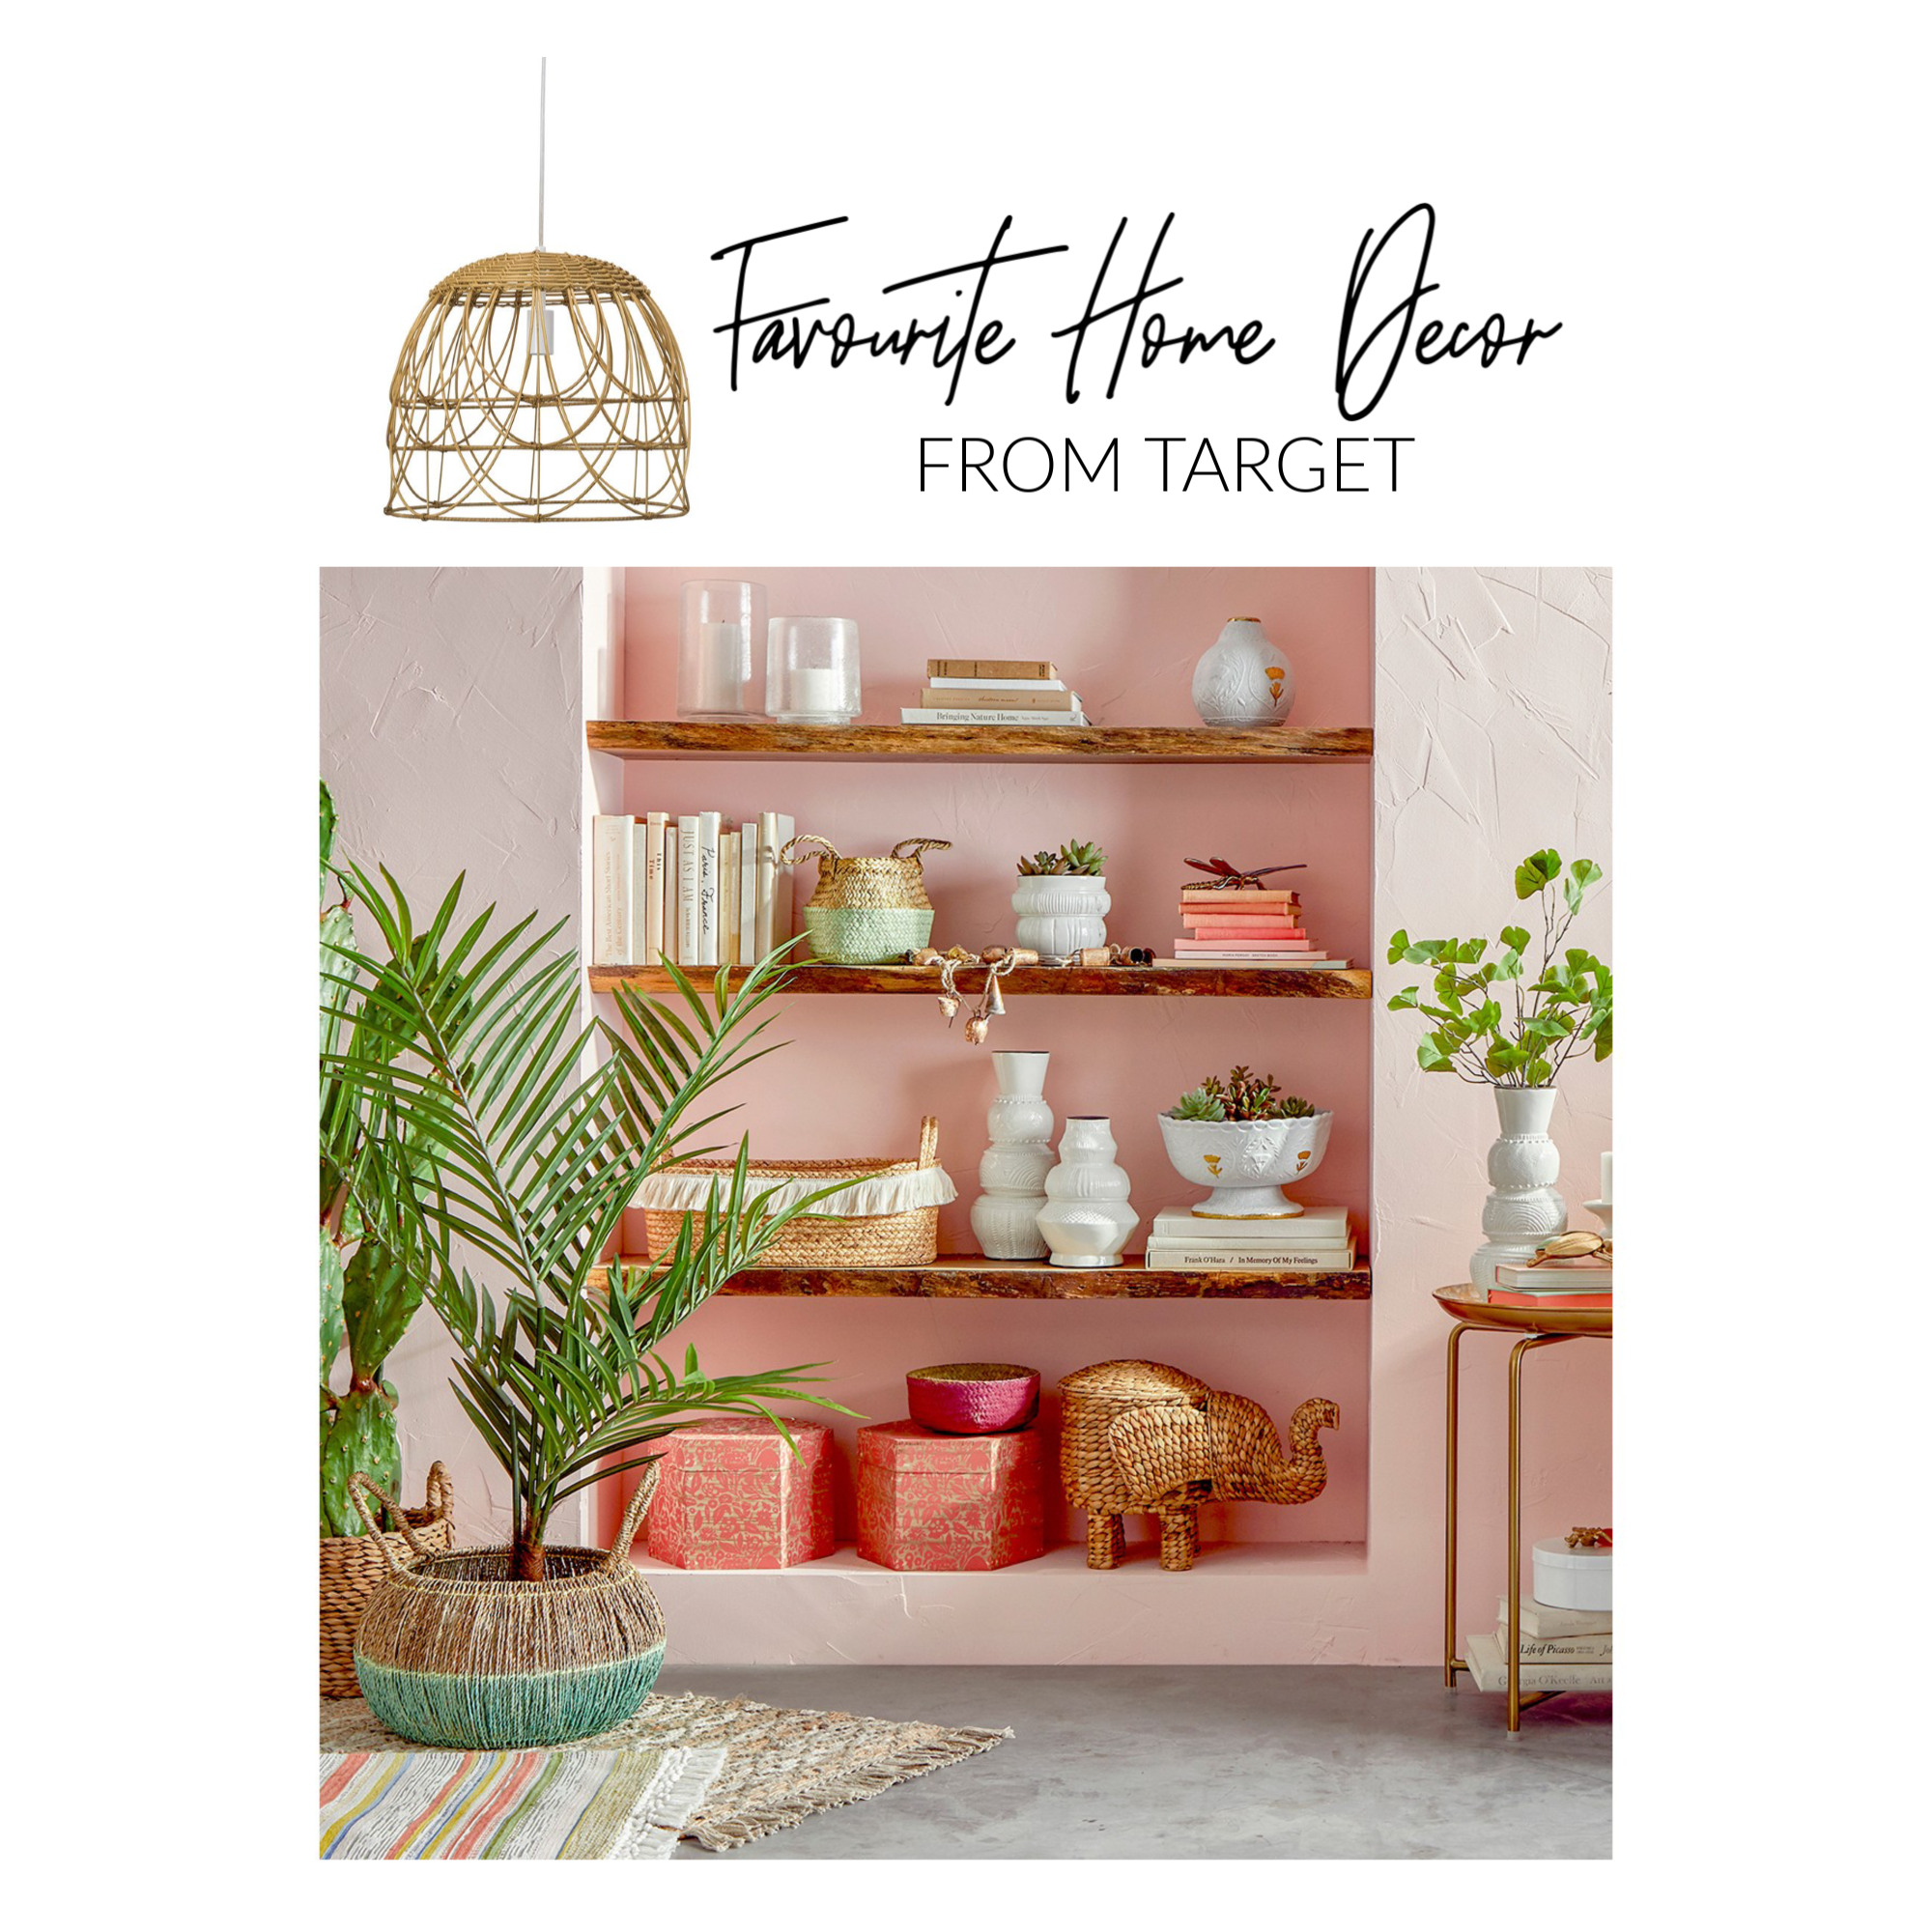 Target Home Furnishings: Favourite Home Decor From Target